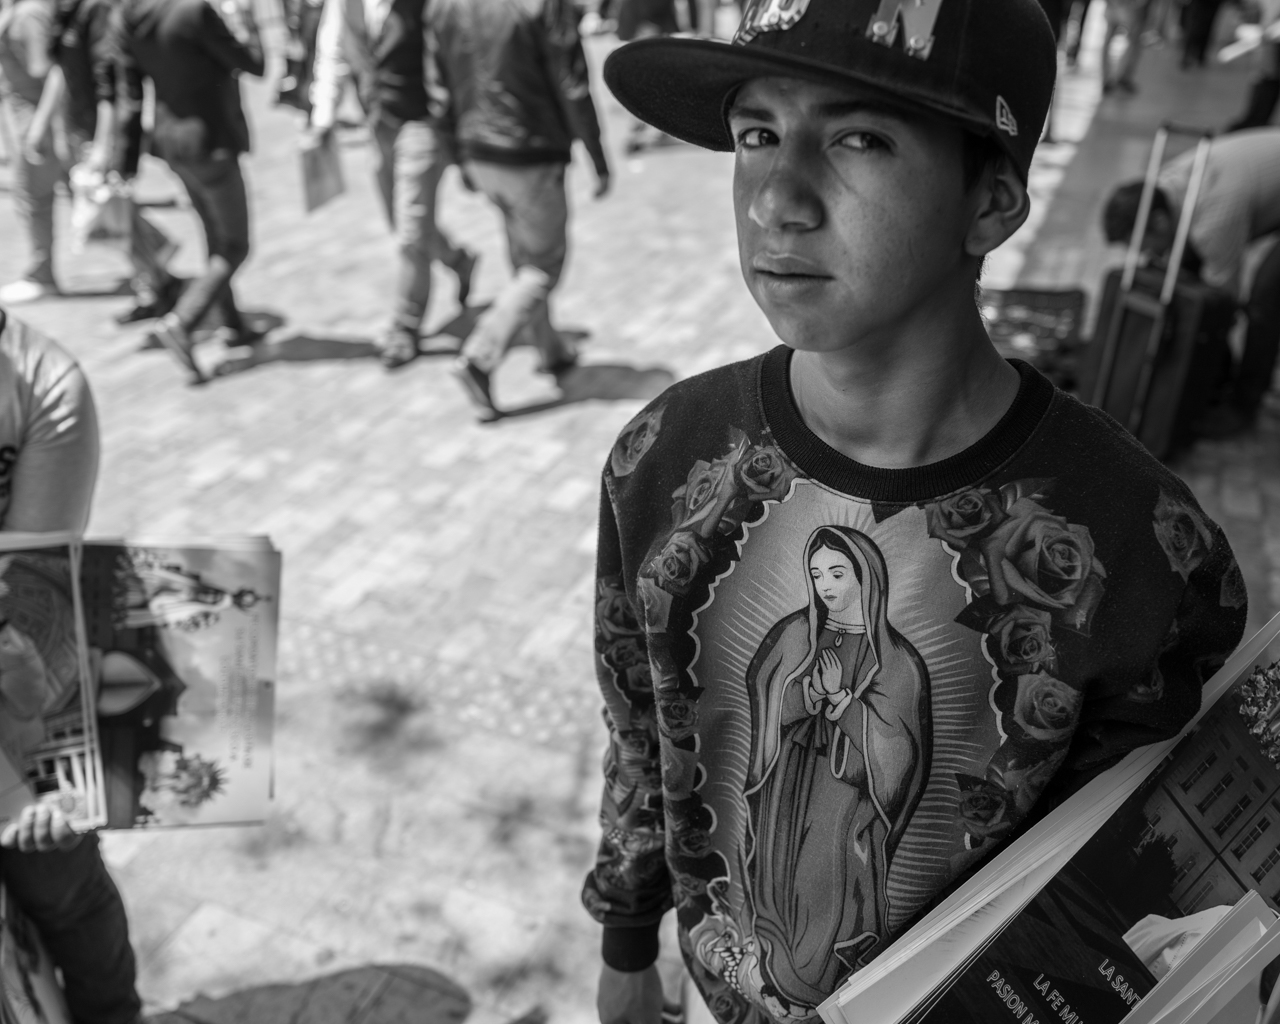 A young man sells religious merchandise, prior to a visit by Pope Francis. Sept. 6, 2017. (Juan Cristóbal Cobo)